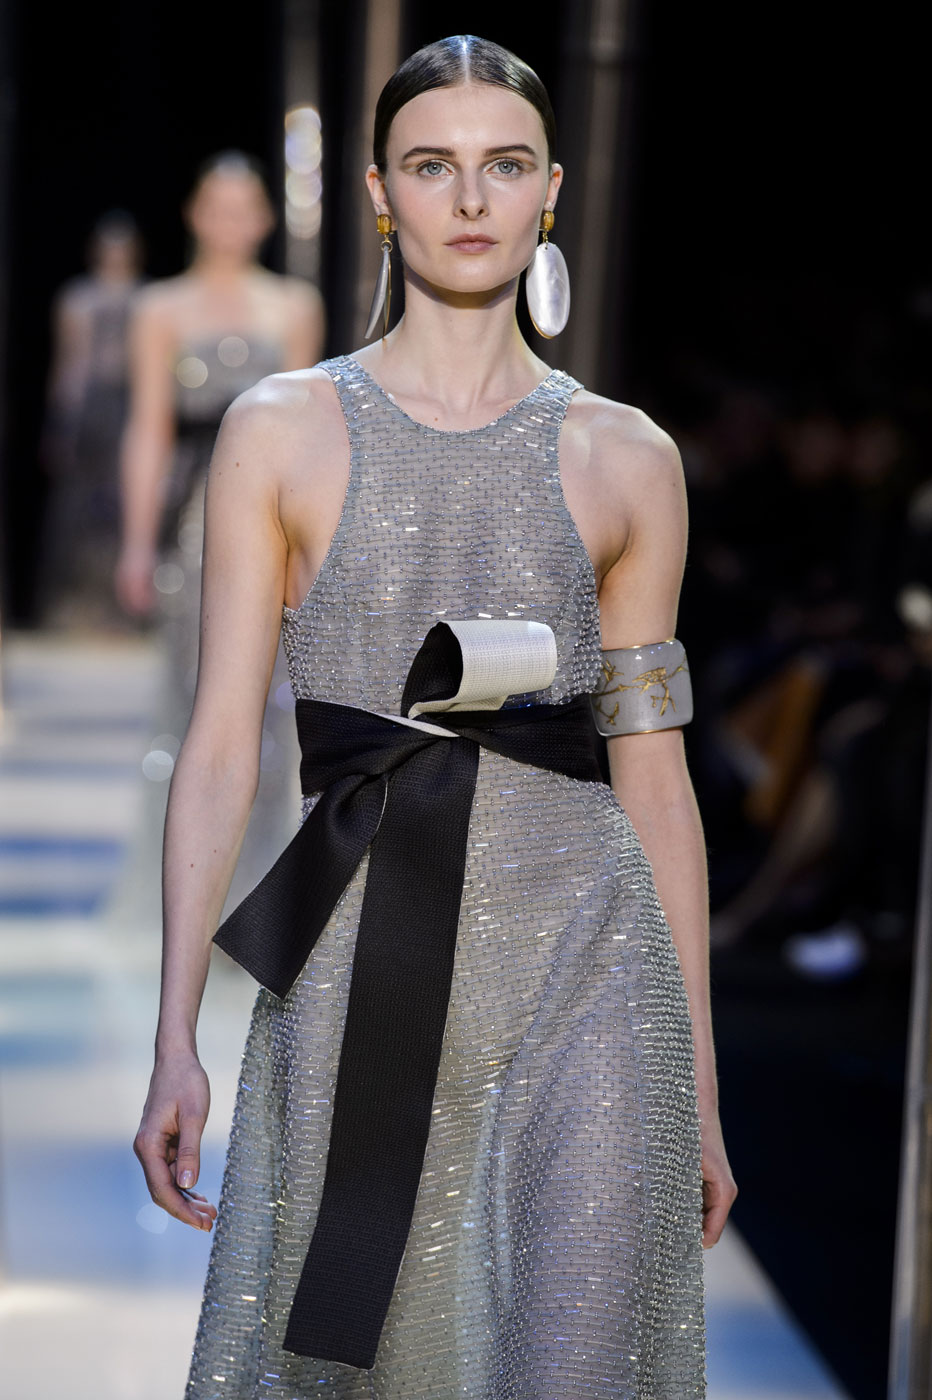 Giorgio-armani-Prive-fashion-runway-show-haute-couture-paris-spring-2015-the-impression-114